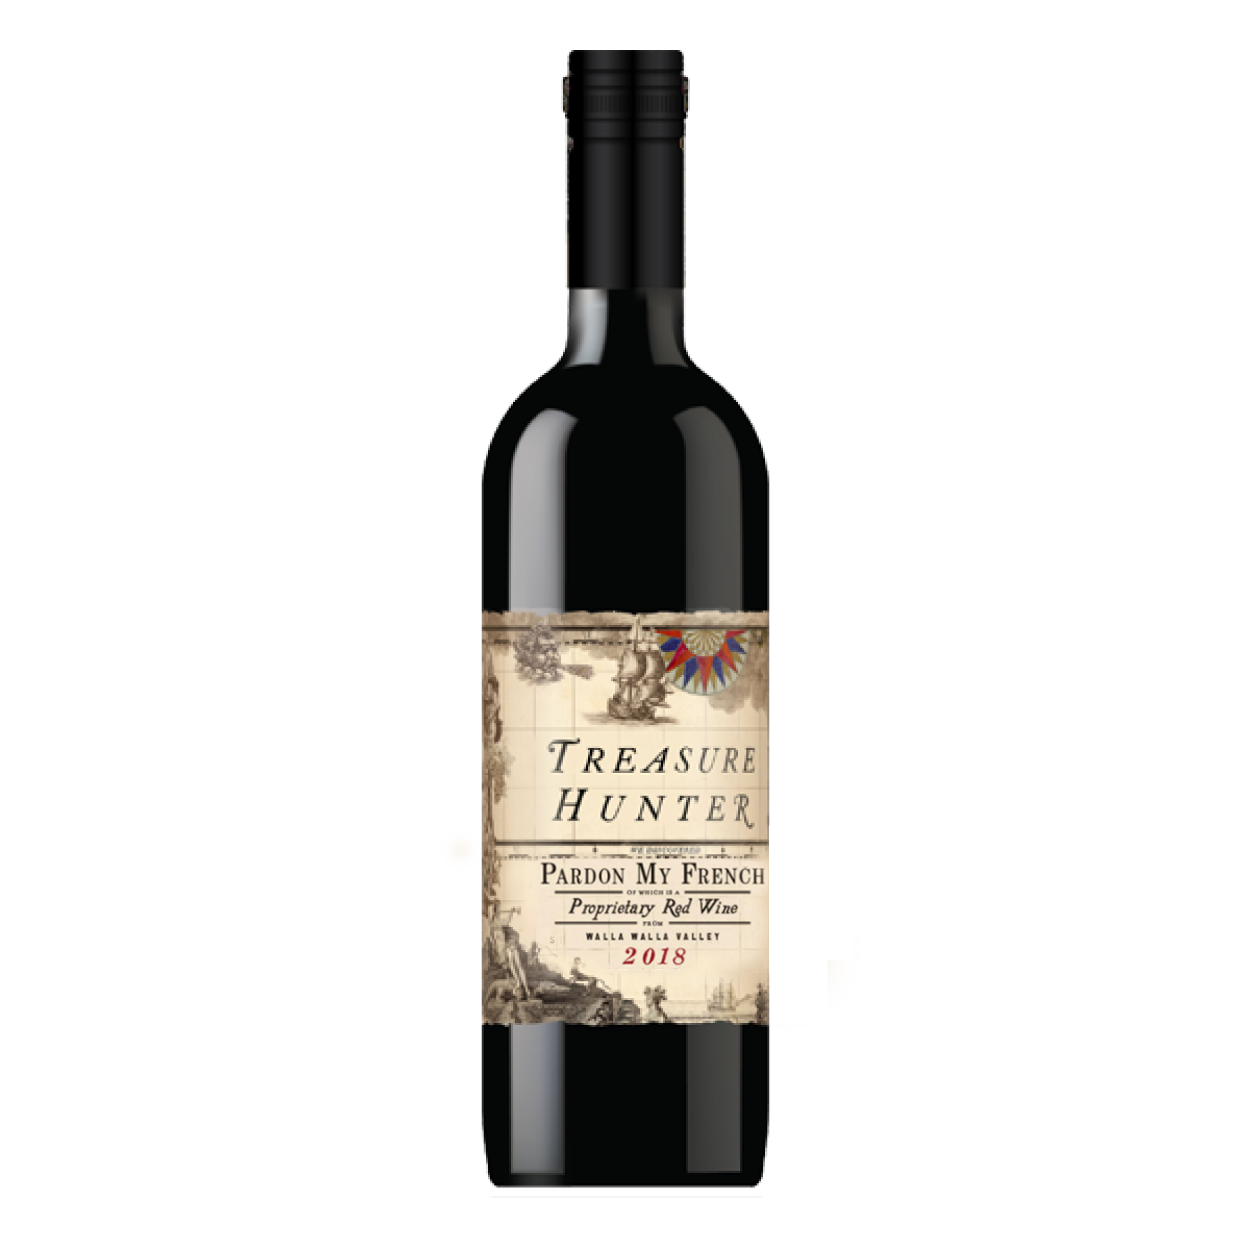 Pardon My French 2018 Bordeaux Blend - The Authentic 3 Finger Wine Company